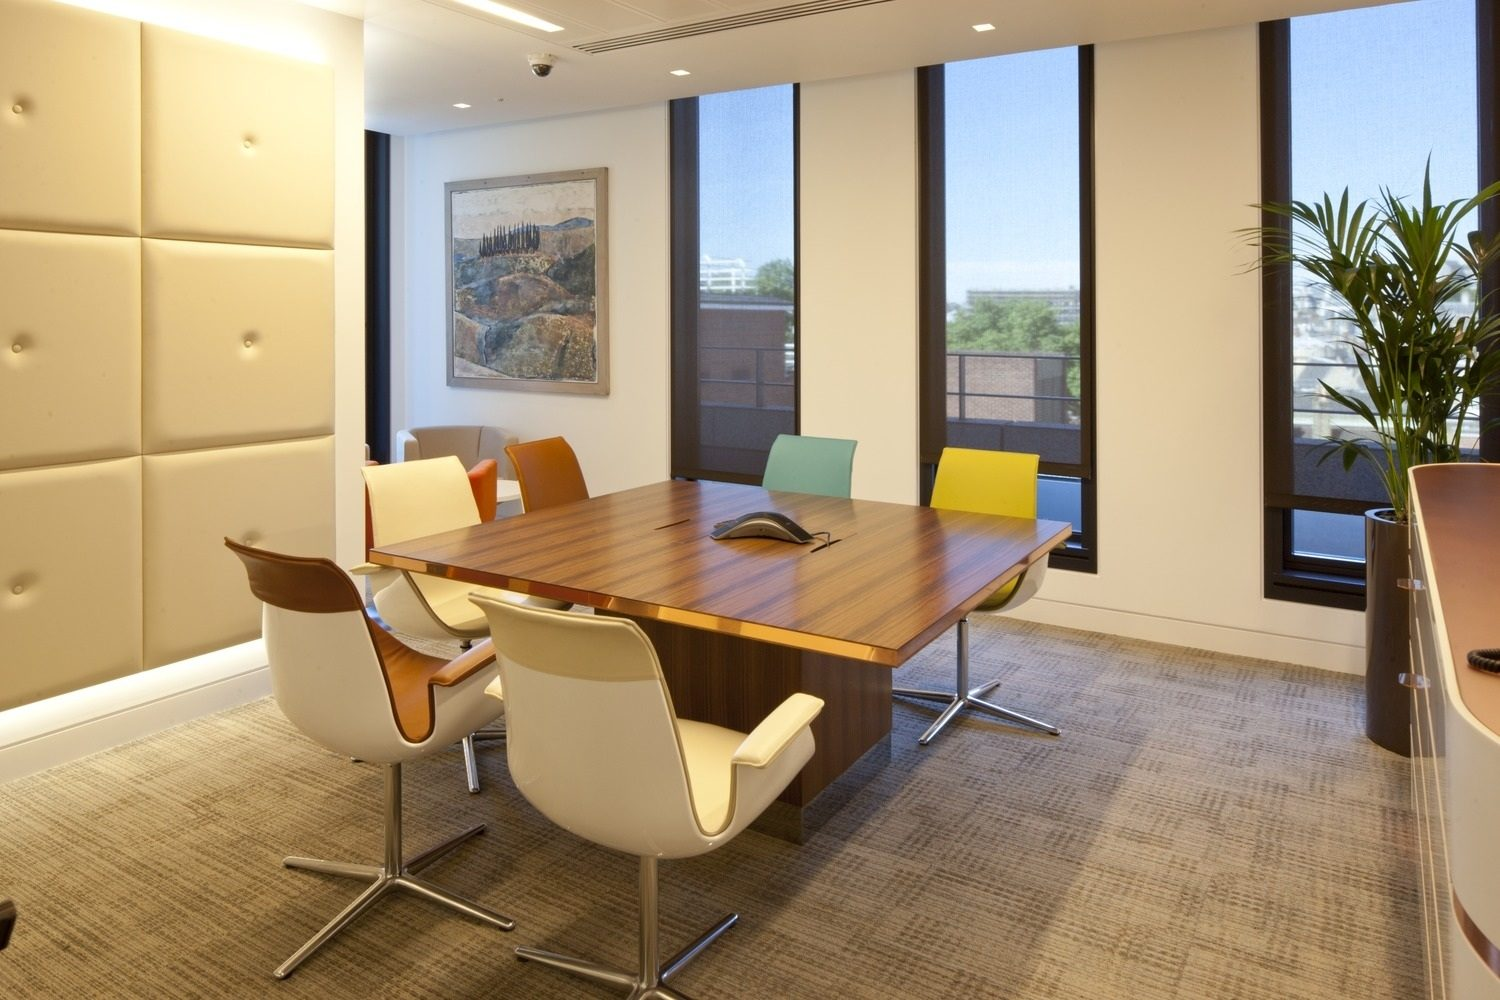 Freshfields meeting room fit out